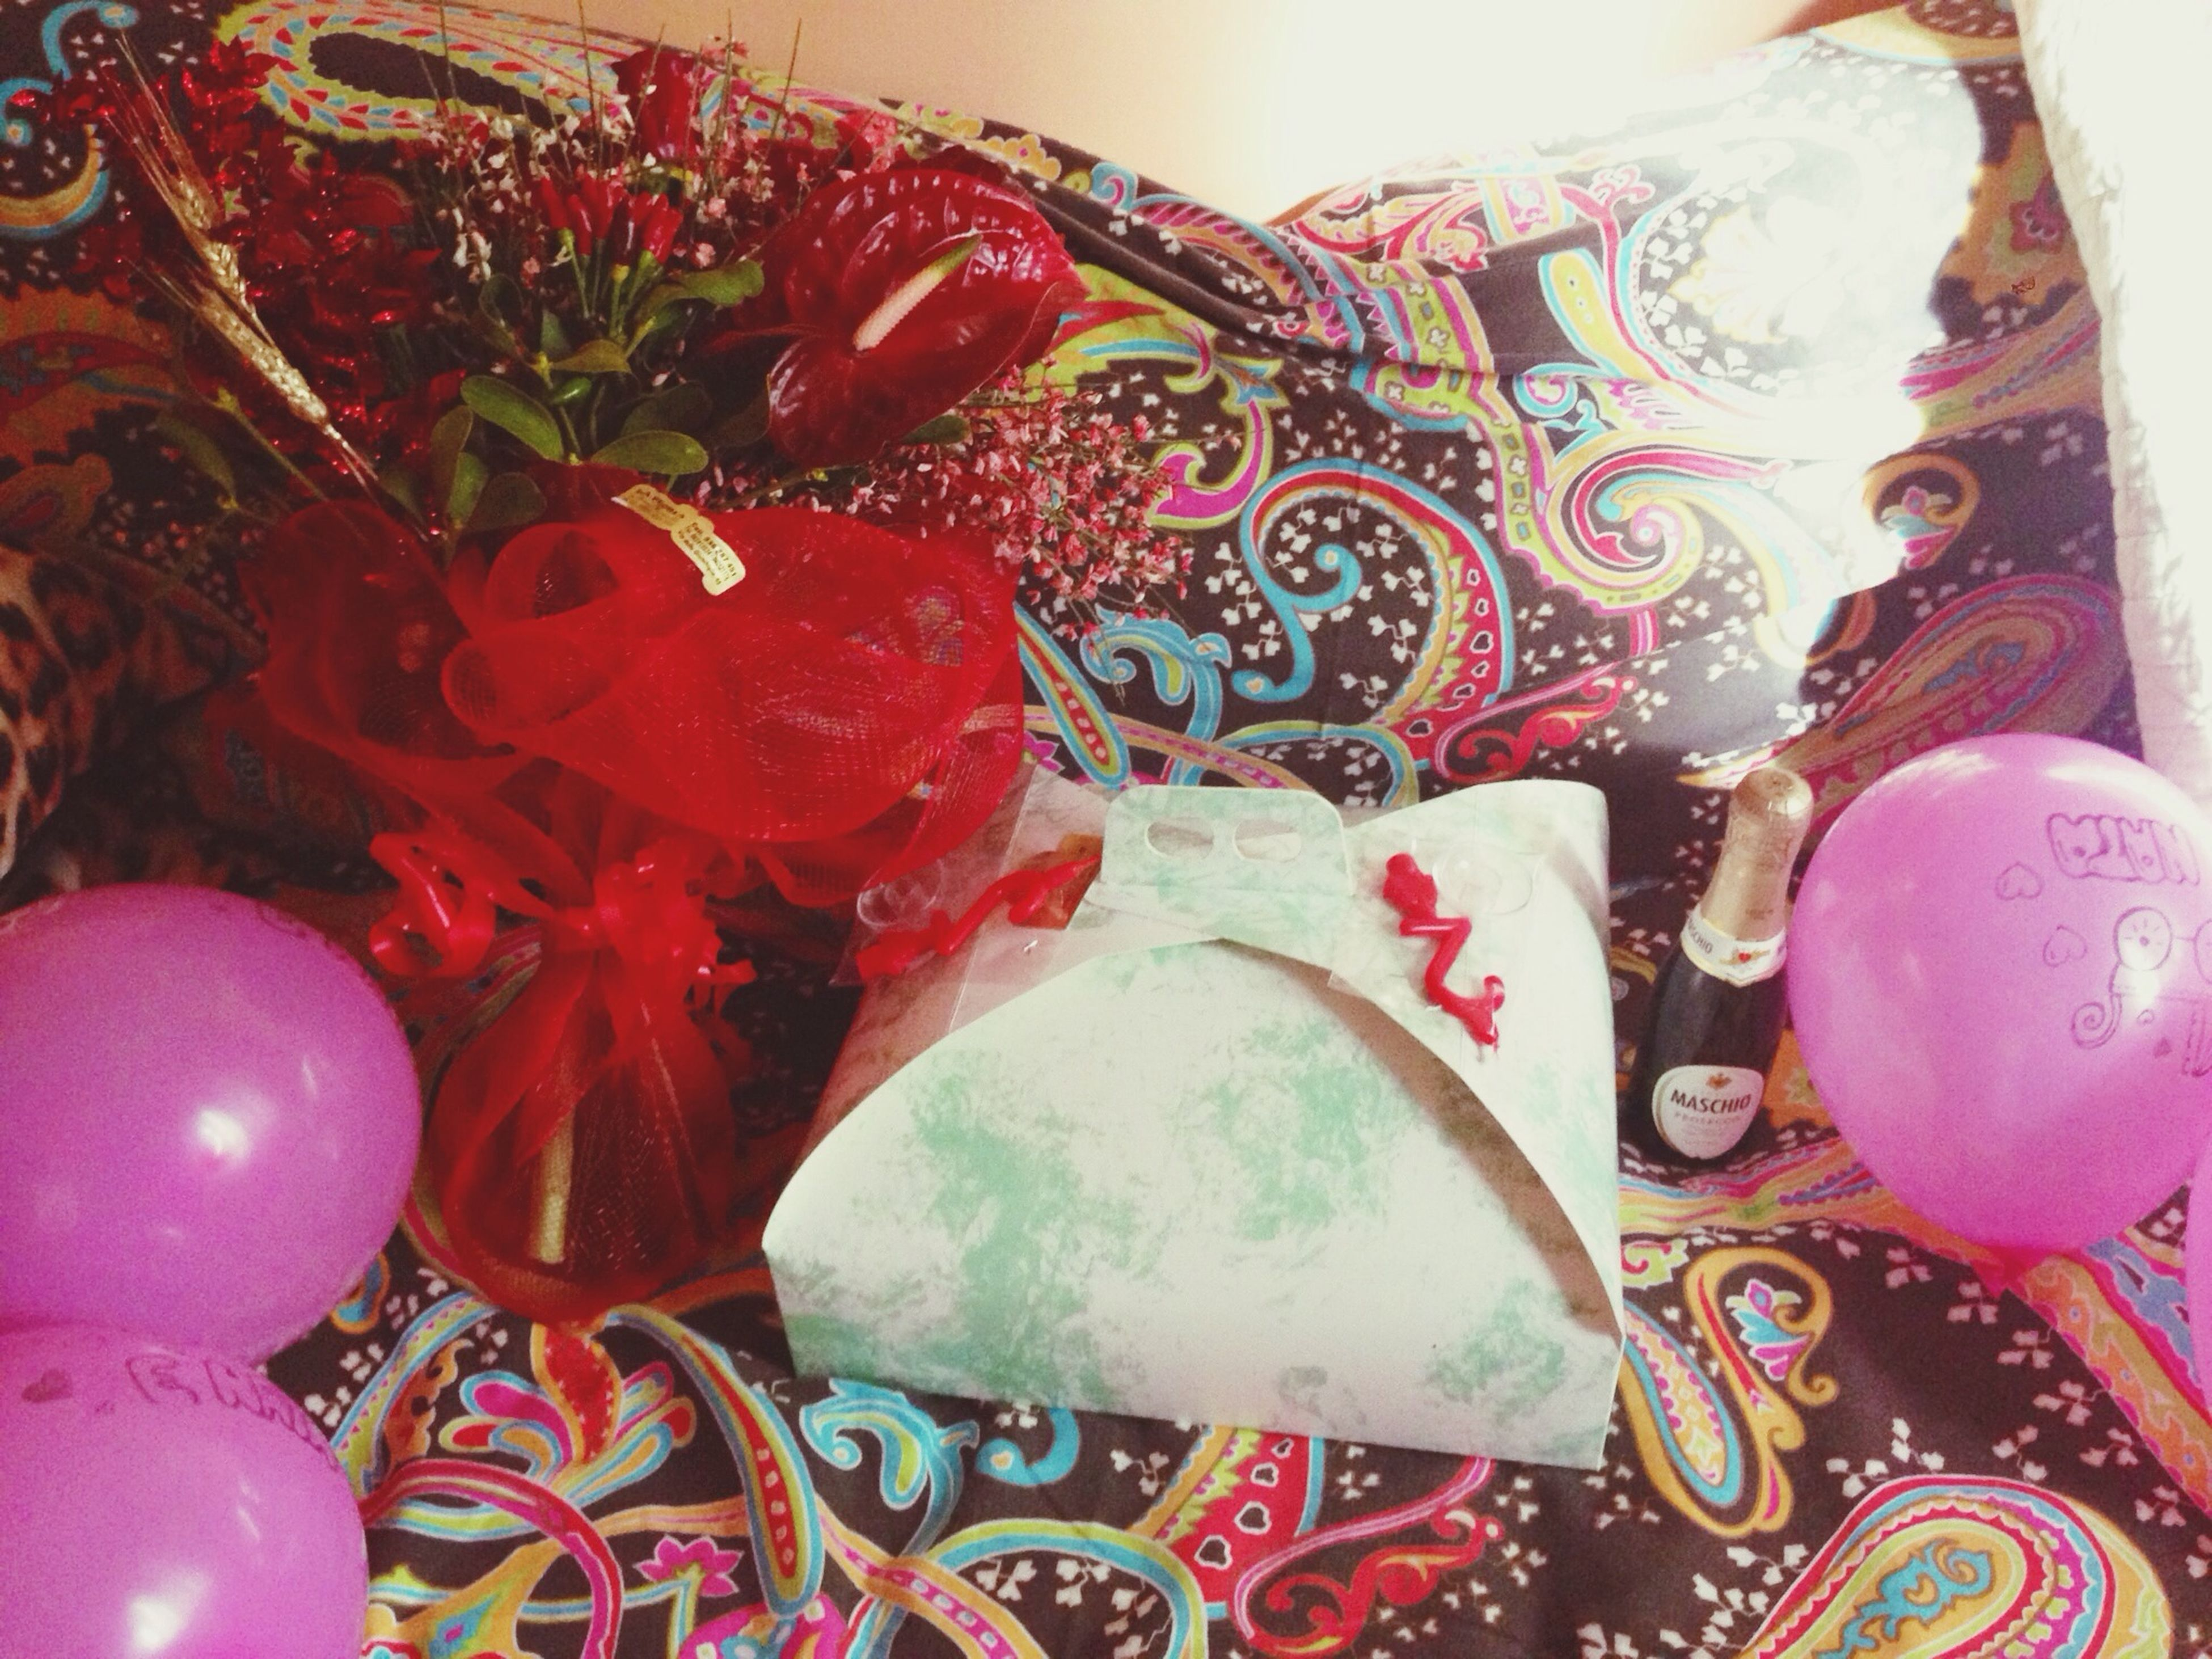 indoors, multi colored, art and craft, high angle view, variation, decoration, still life, celebration, creativity, art, tradition, cultures, red, choice, close-up, design, large group of objects, floral pattern, christmas, craft